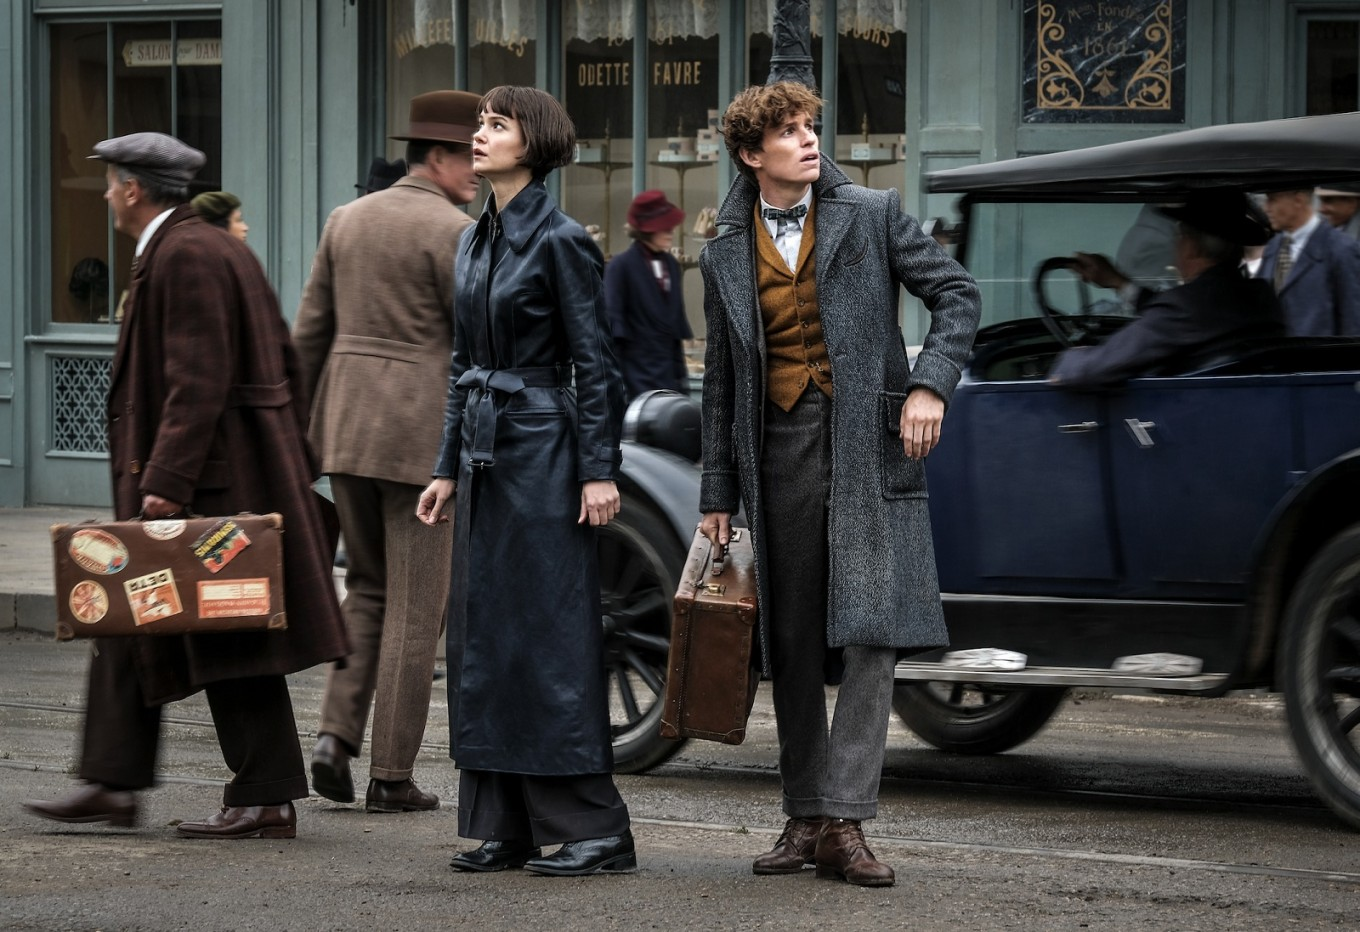 'Fantastic Beasts: The Crimes of Grindelwald': An entry whose future is more promising